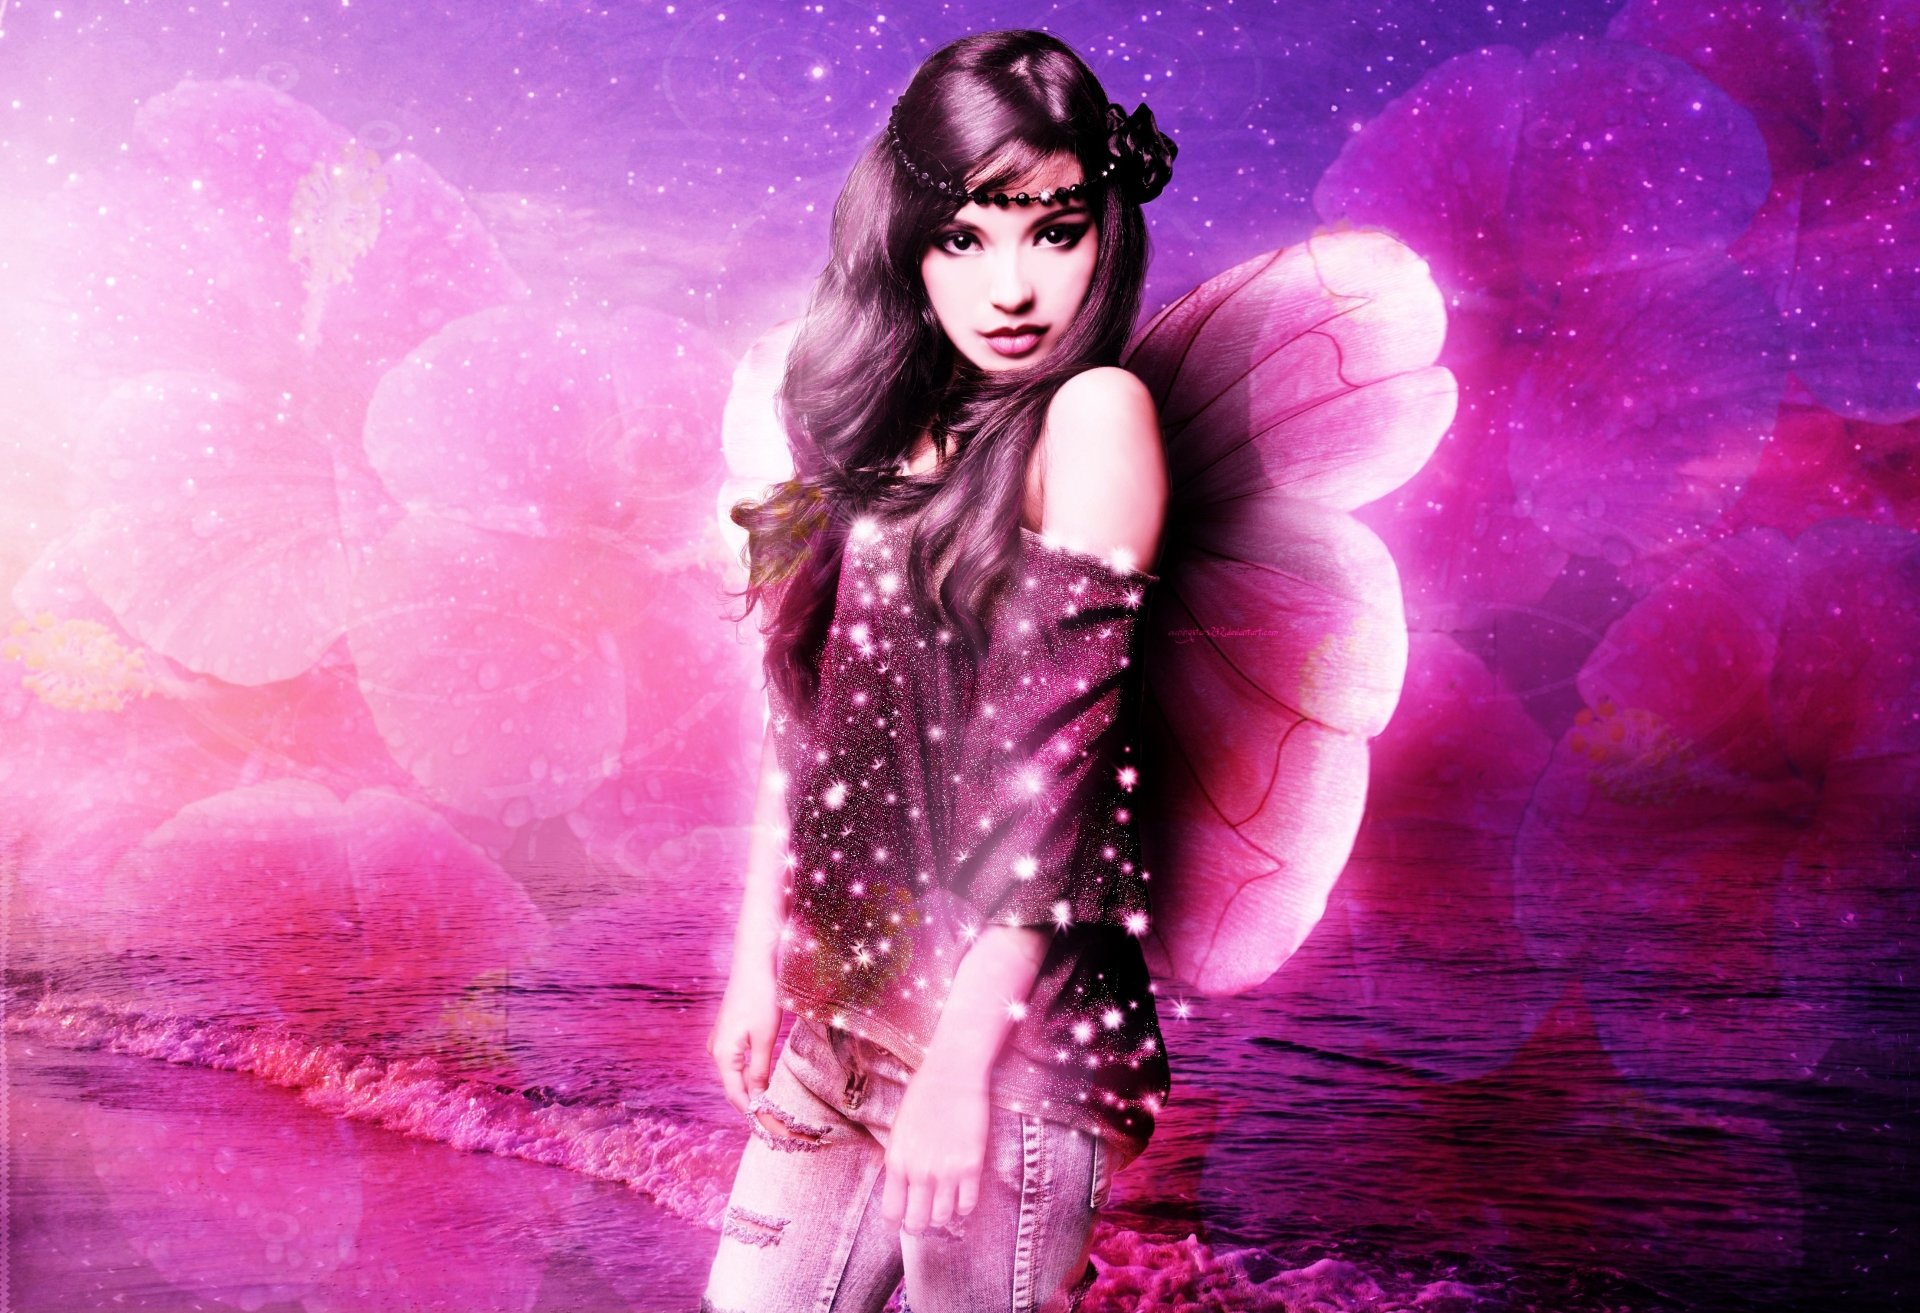 Wallpapers ID:700544